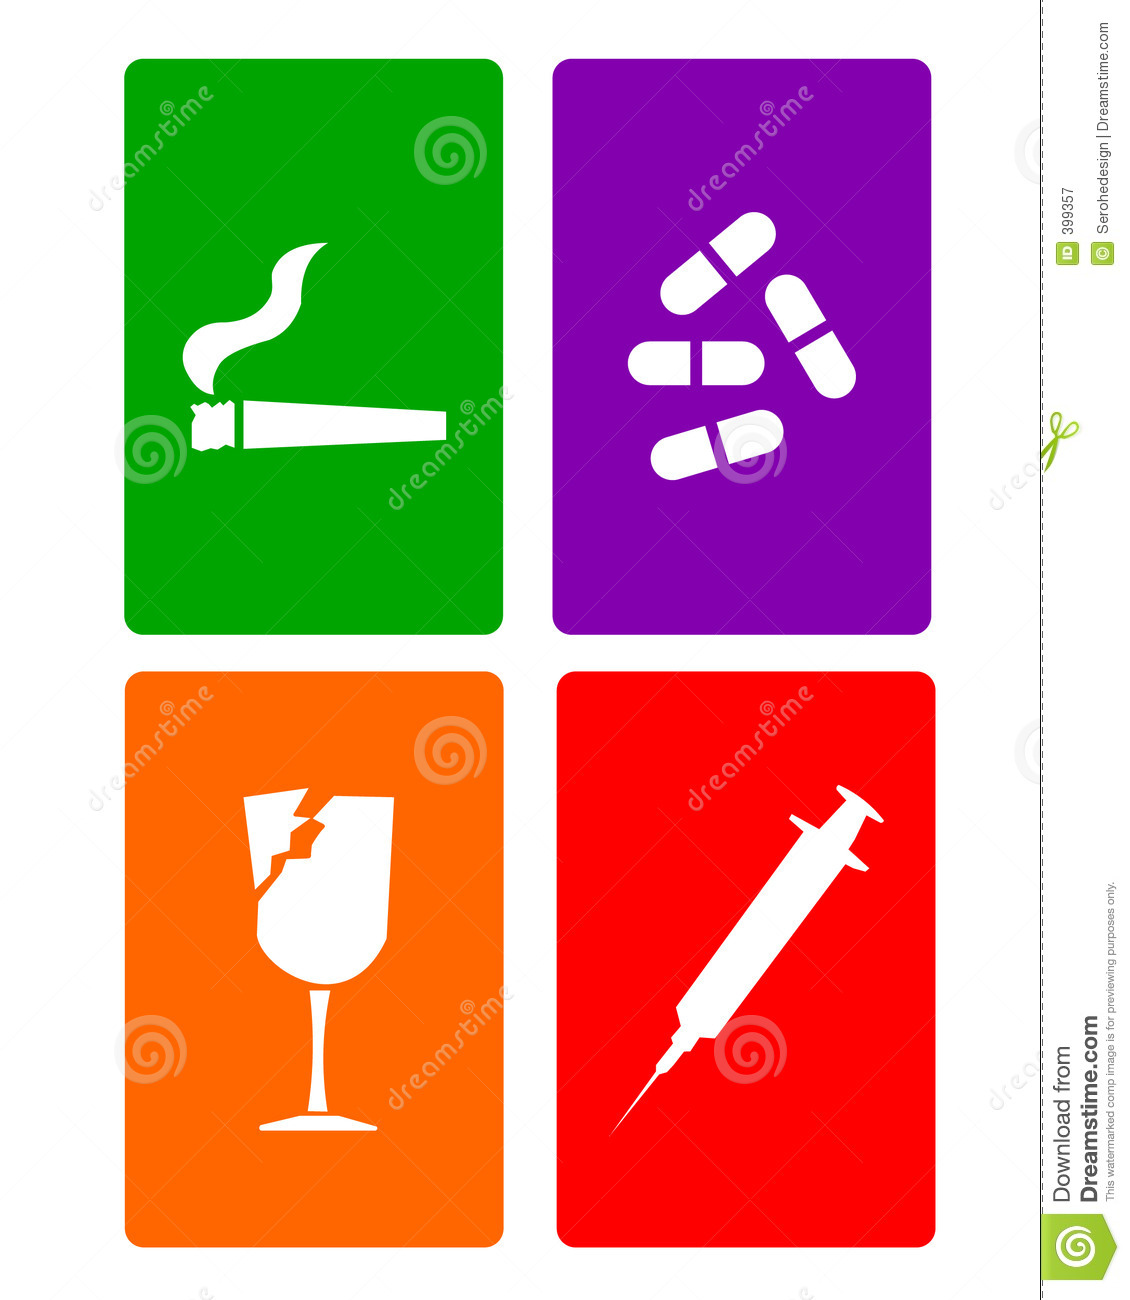 Free download best on. Alcohol clipart drug use